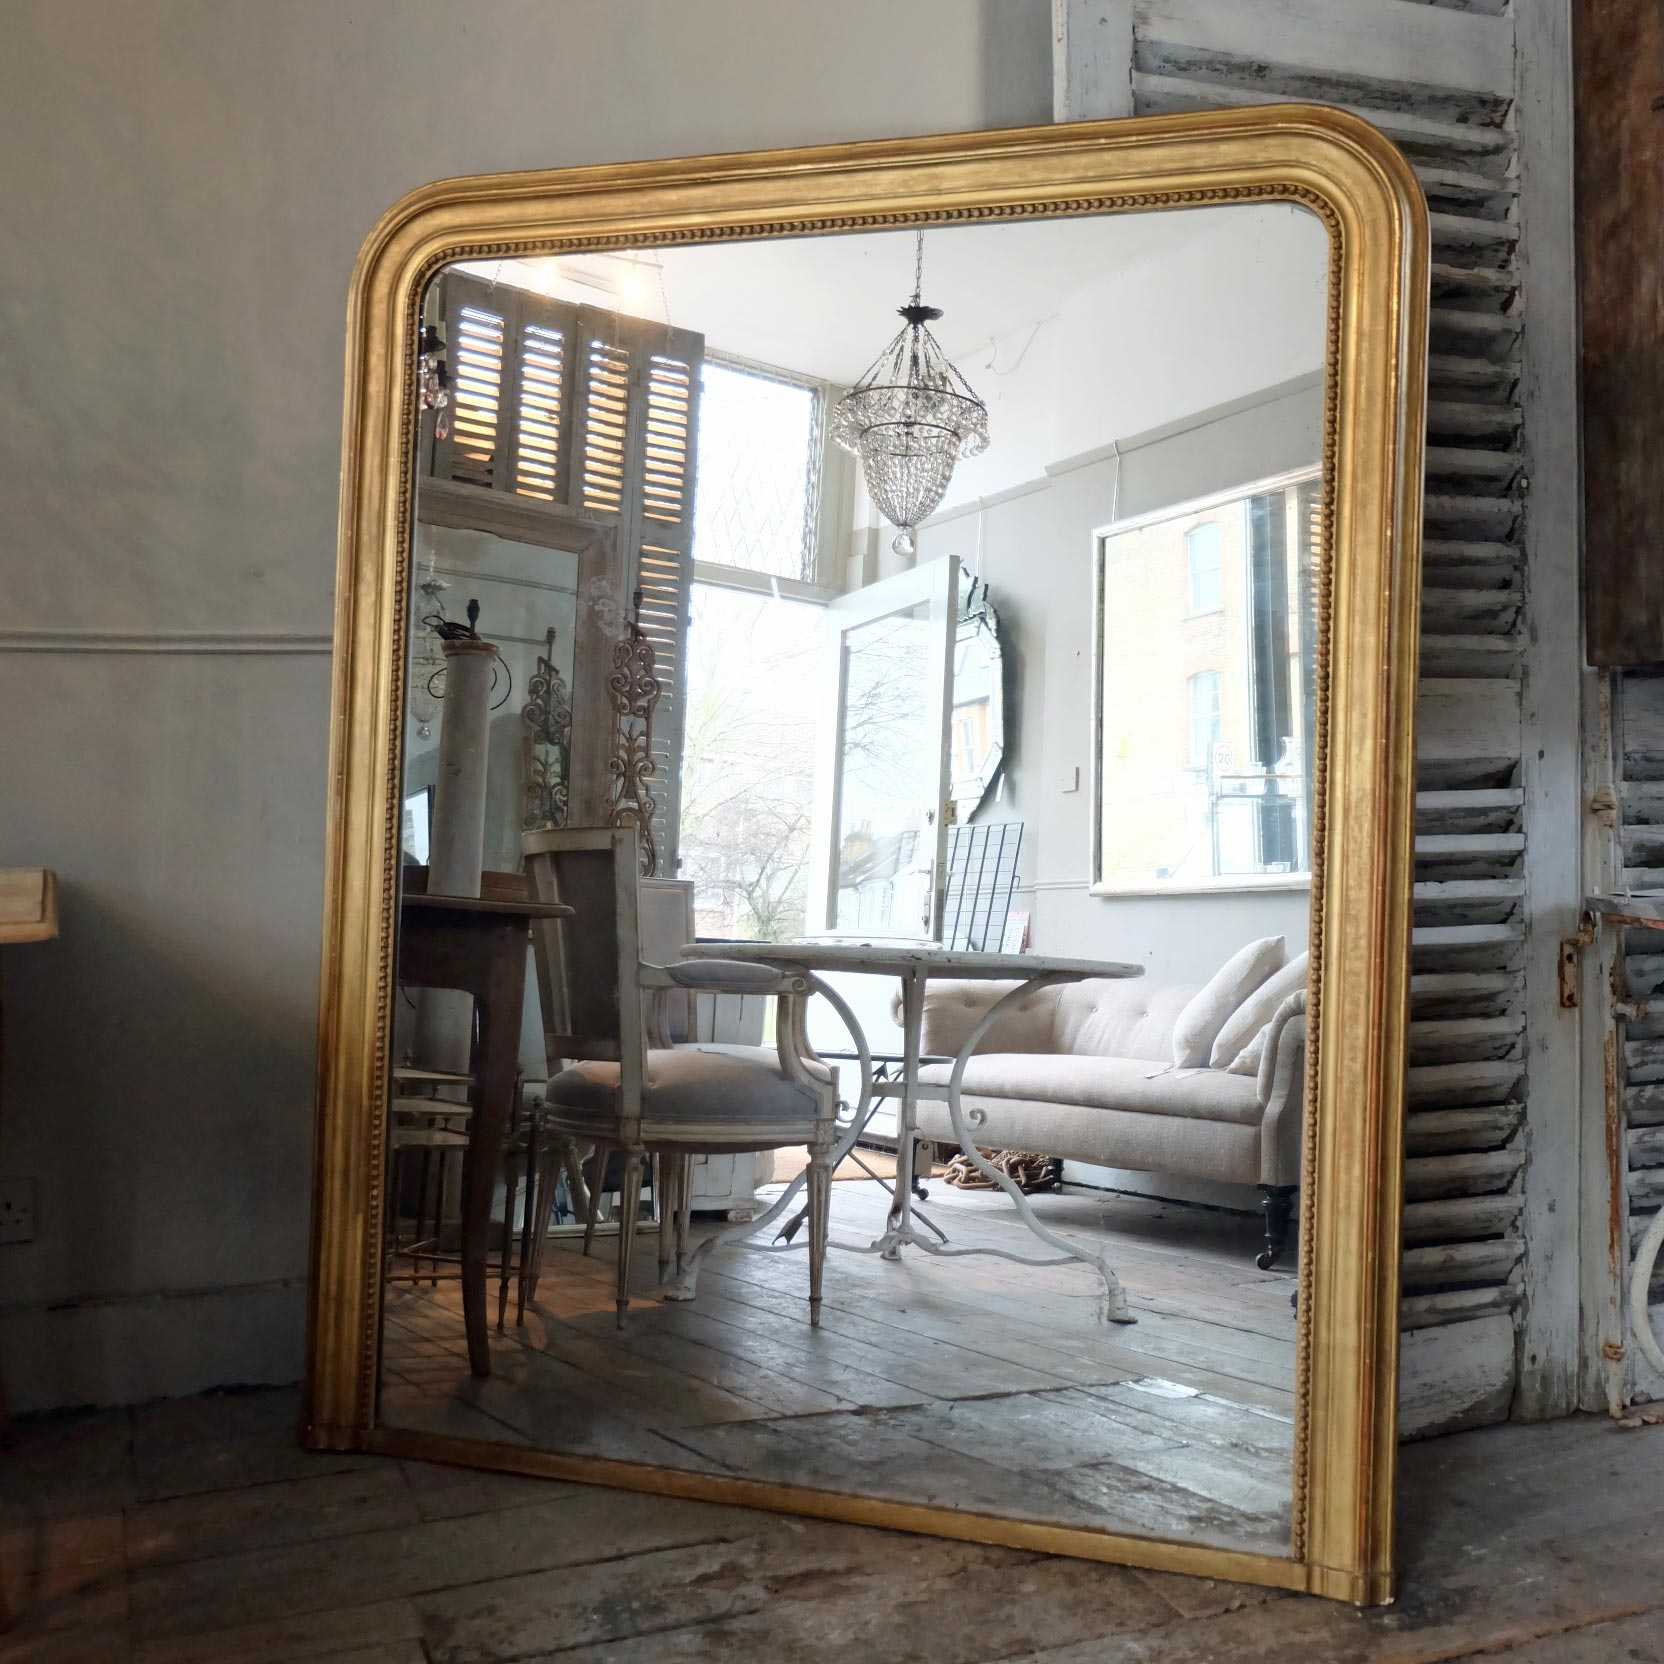 Large Antique Gilt Mirror Puckhaber Decorative Antiques Inside Large Gilt Mirrors (Image 6 of 15)